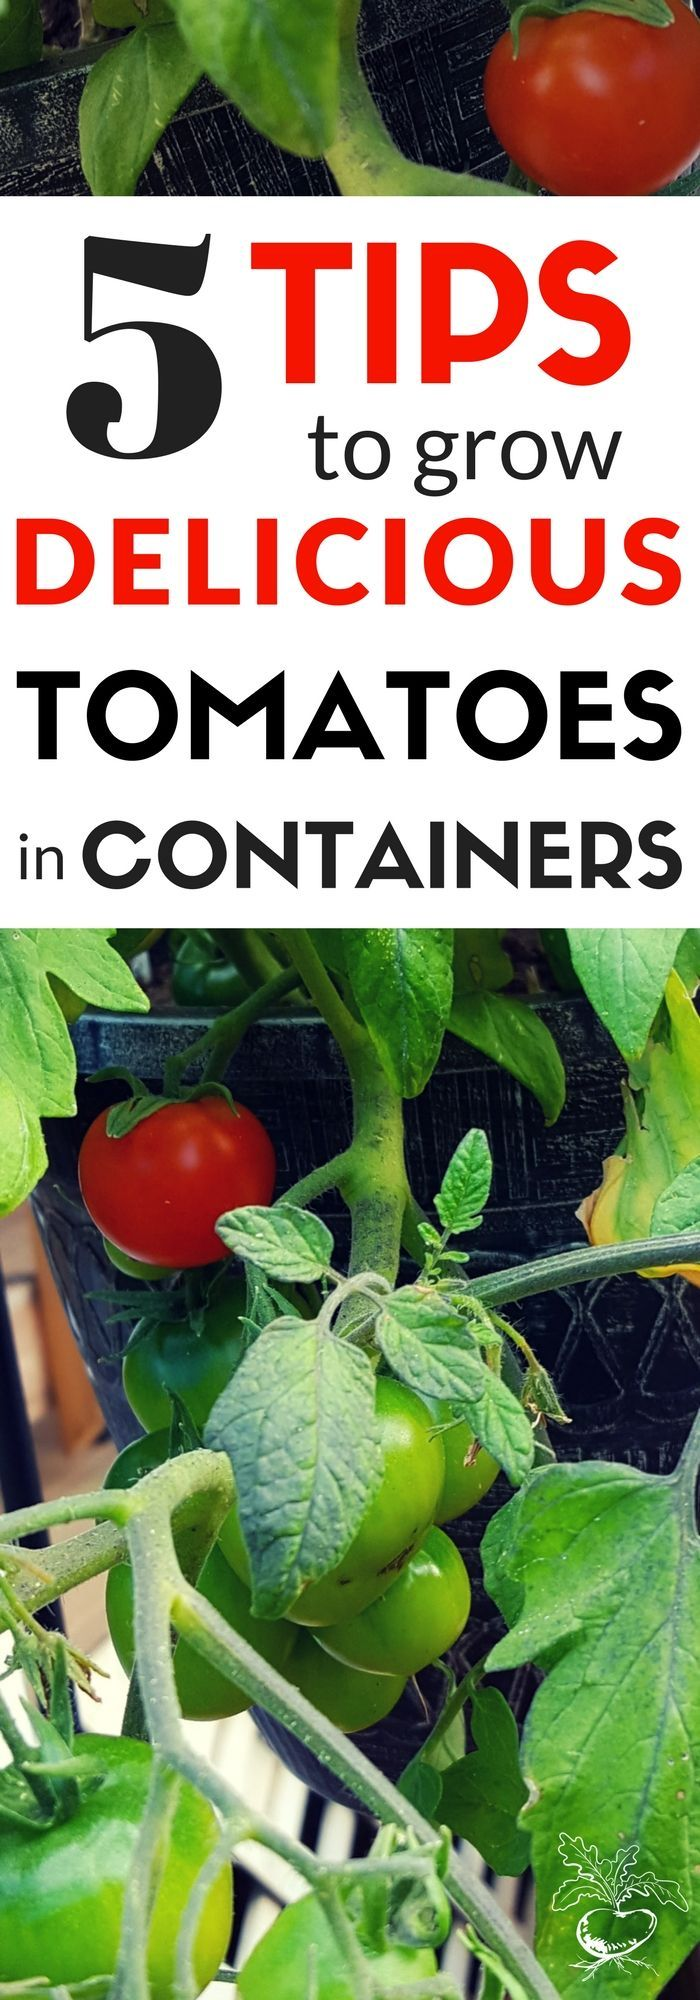 How much to water tomatoes in containers - Want To Grow The Very Best Tomatoes In Containers Follow These 5 Tomato Gardening Tips